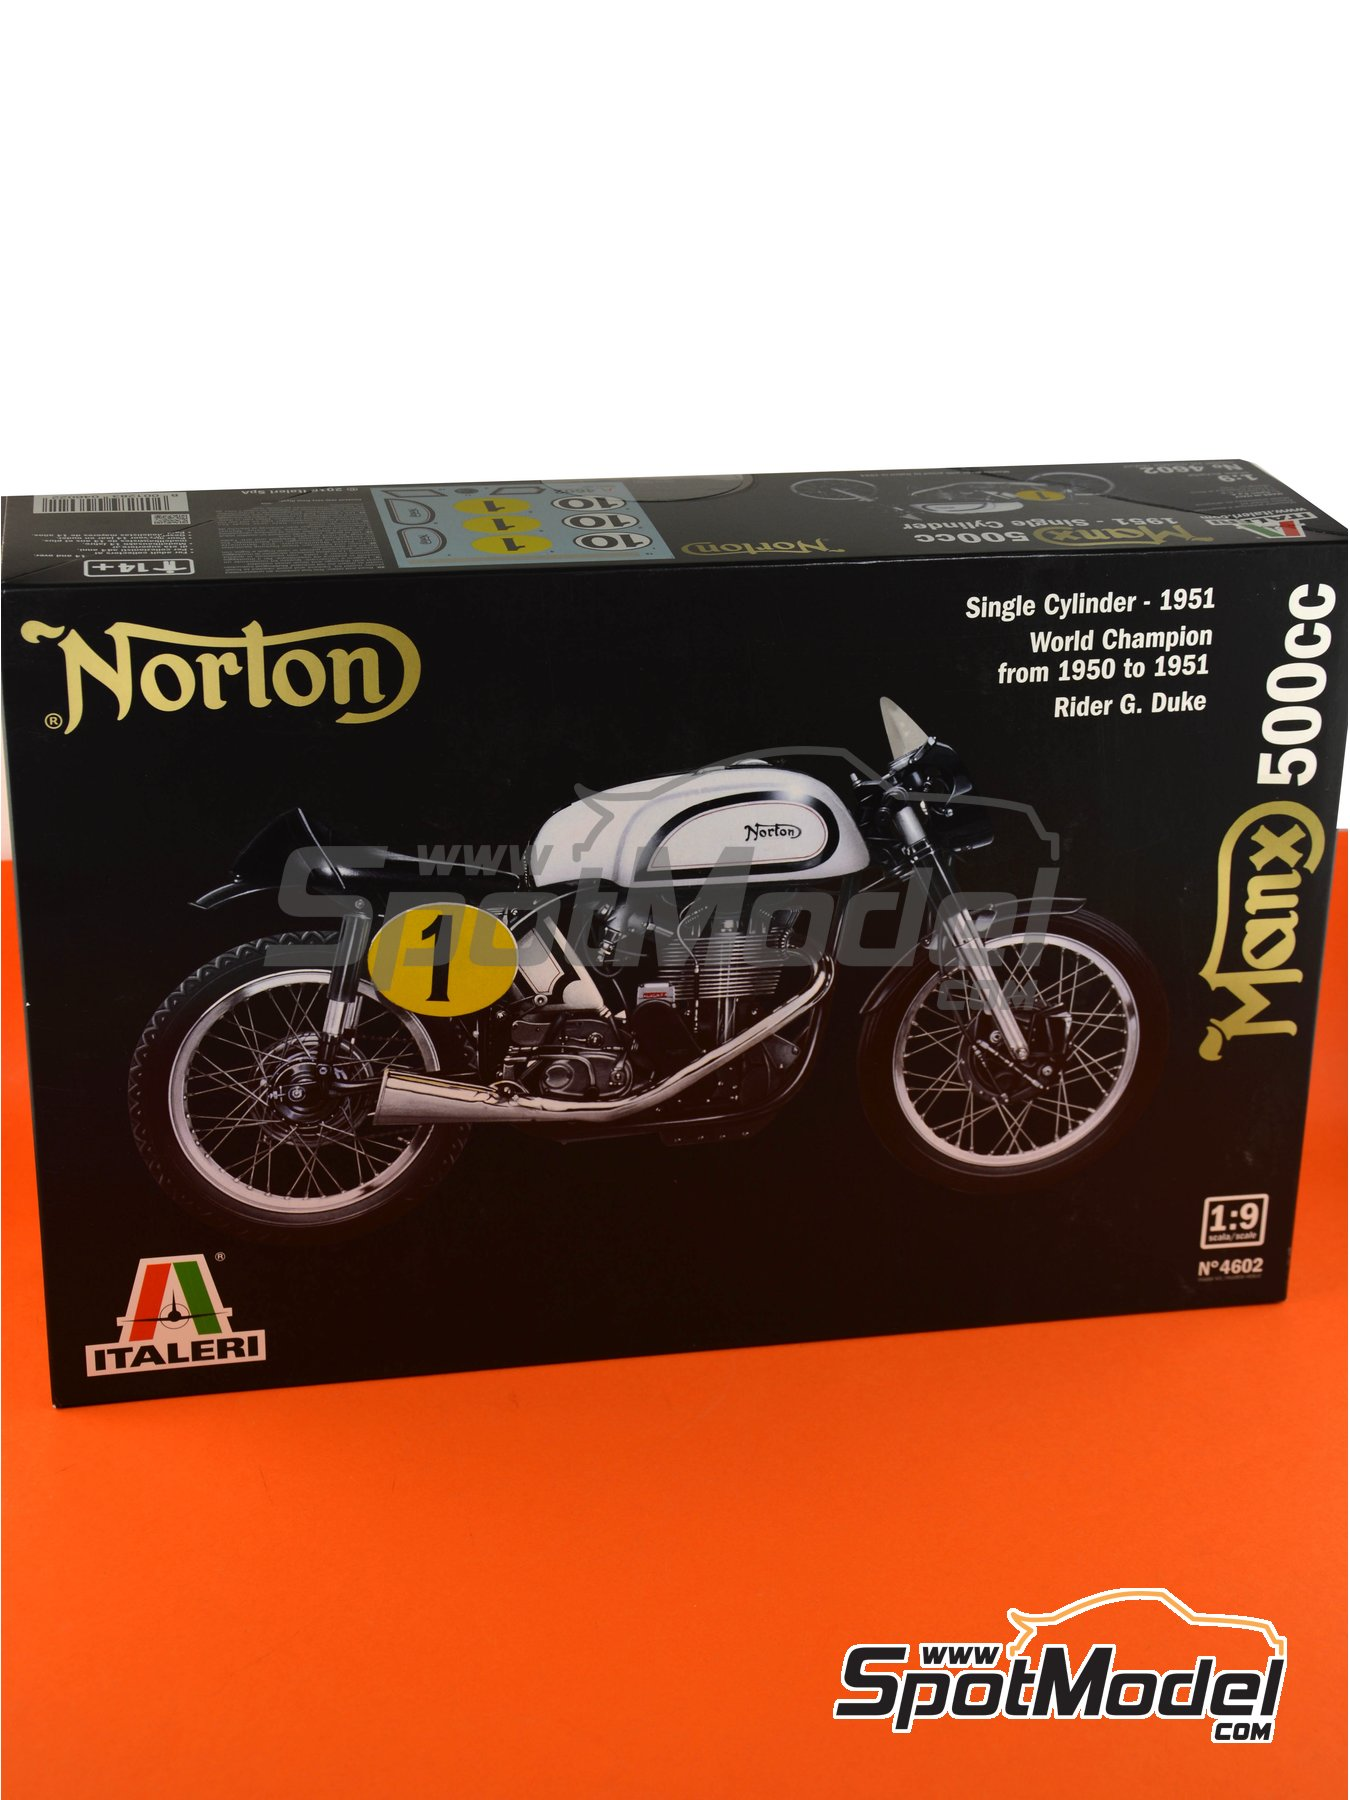 Norton Manx 500cc - World Championship | Model bike kit in 1/9 scale manufactured by Italeri (ref. 4602) image